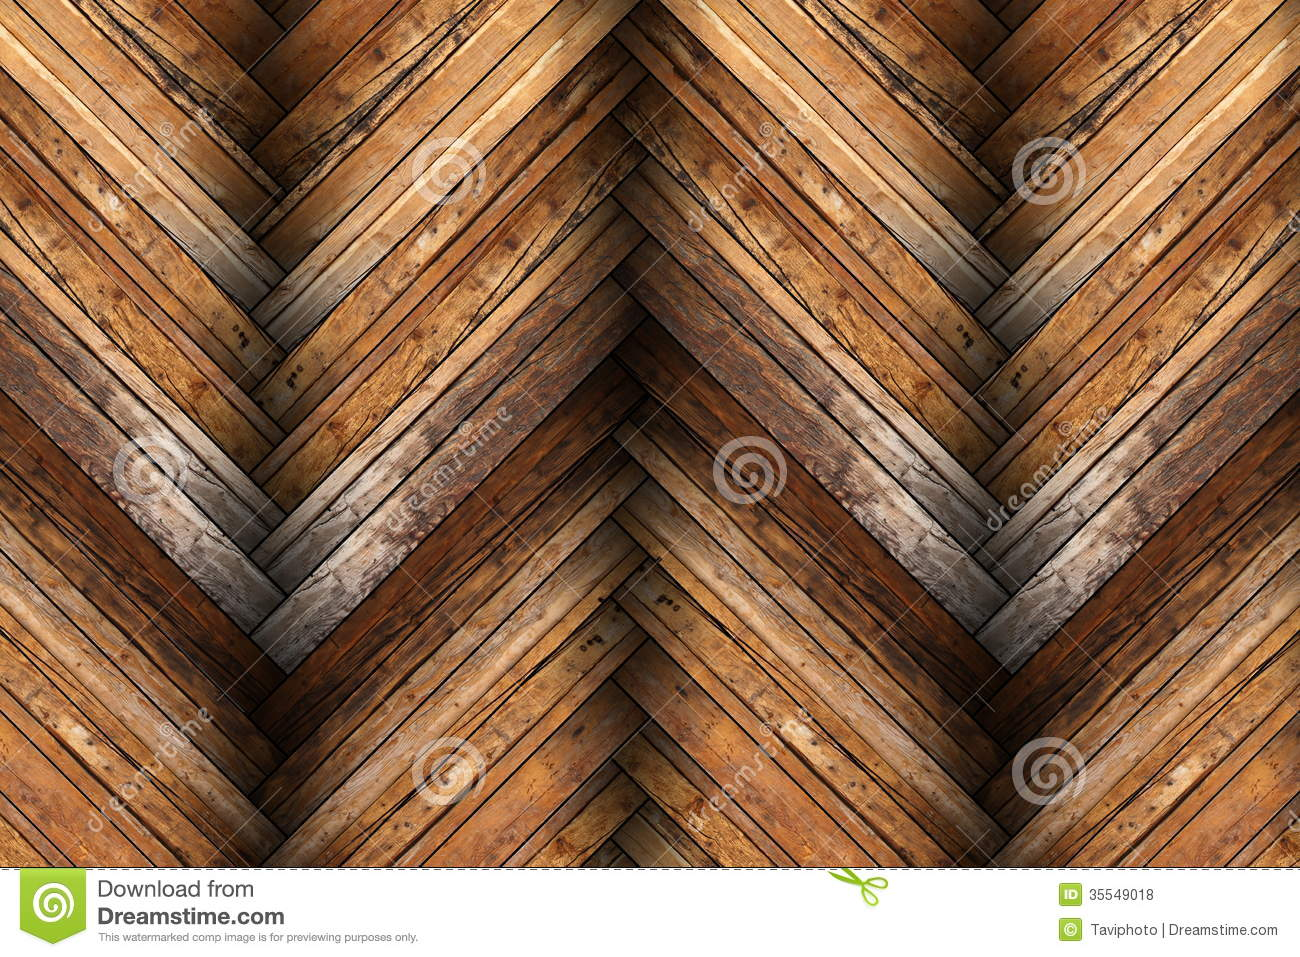 Mahogany Tiles On Wooden Floor Texture Royalty Free Stock